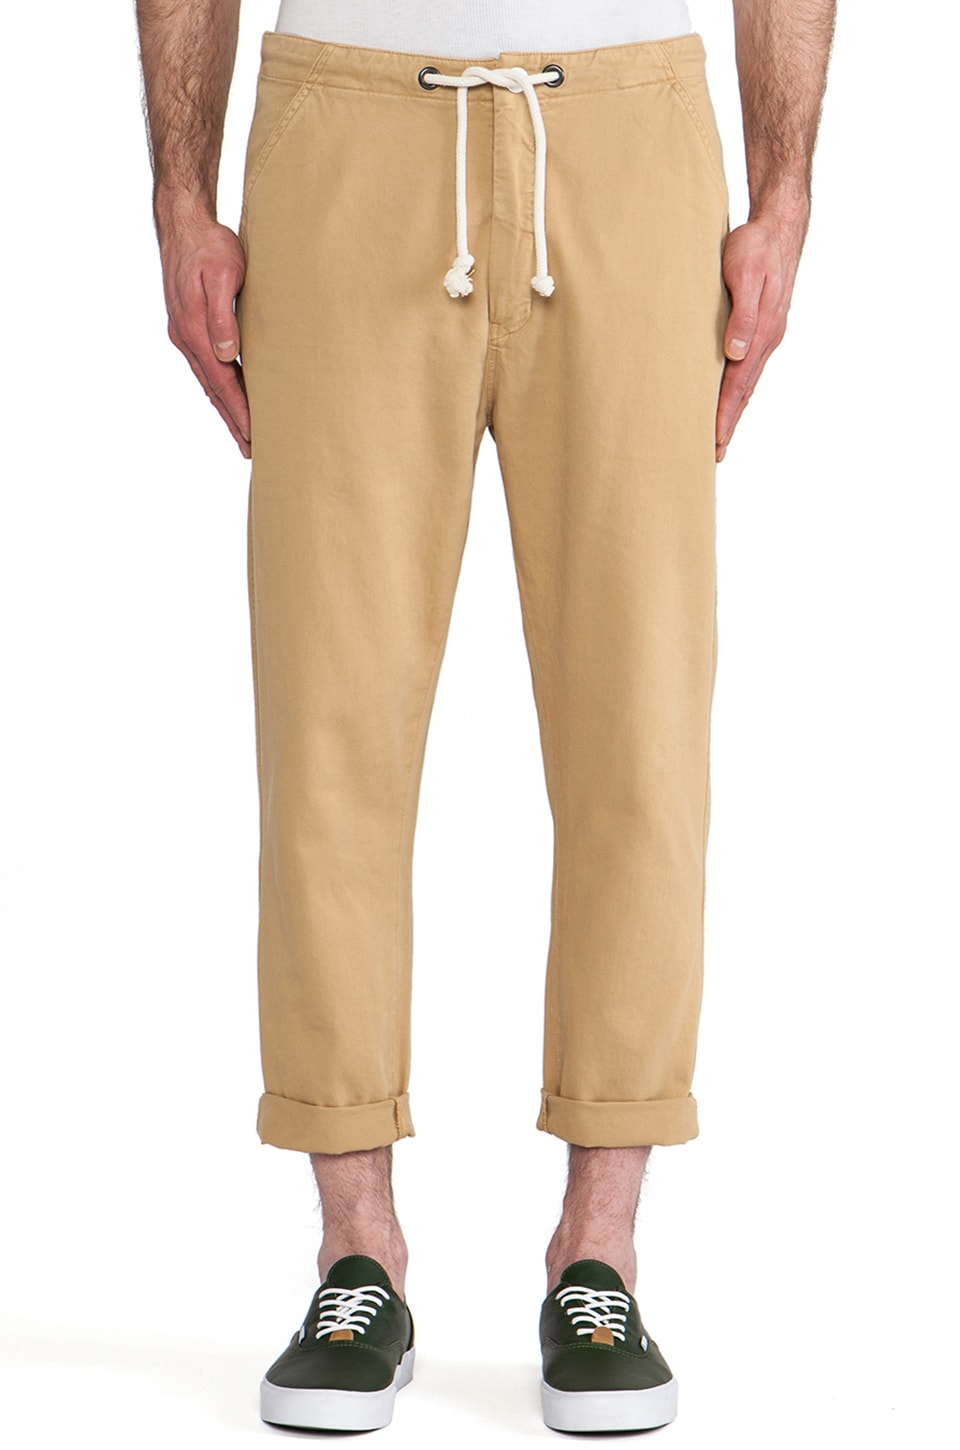 LEVI'S: Made & Crafted Drop Out Pant in Prairie Sand